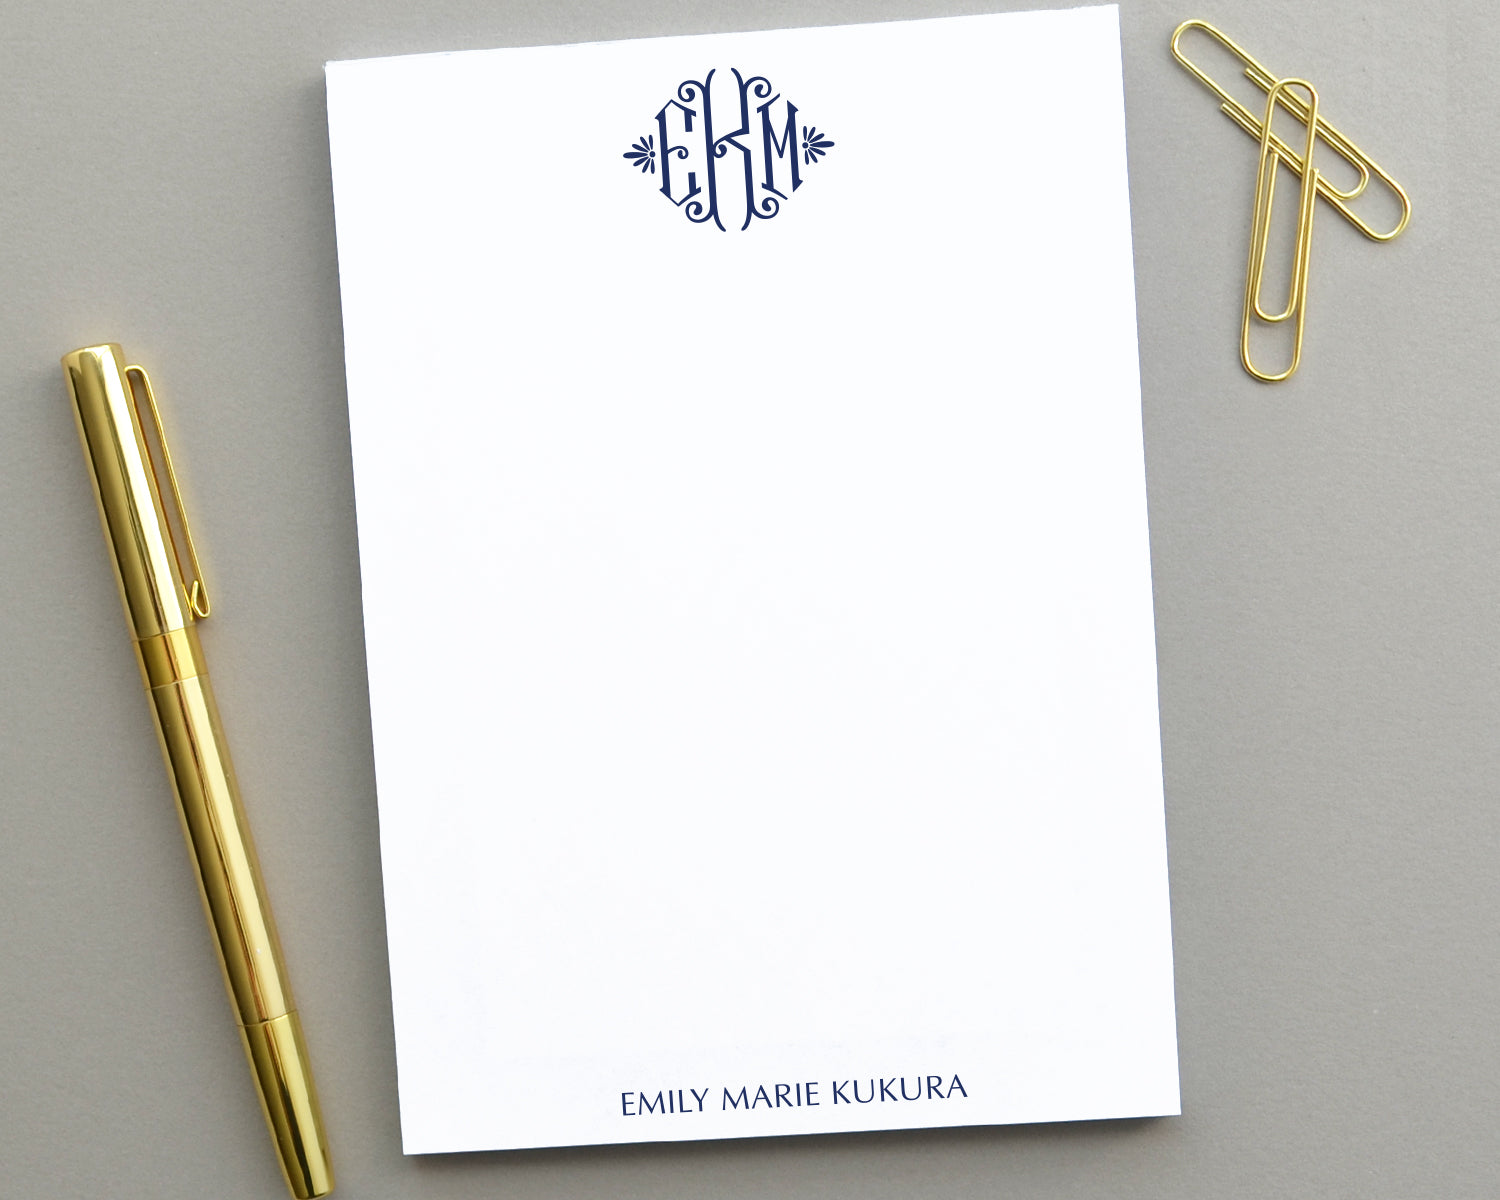 Elegant Monogrammed Notepad, Customized Notepad Personalized Gifts